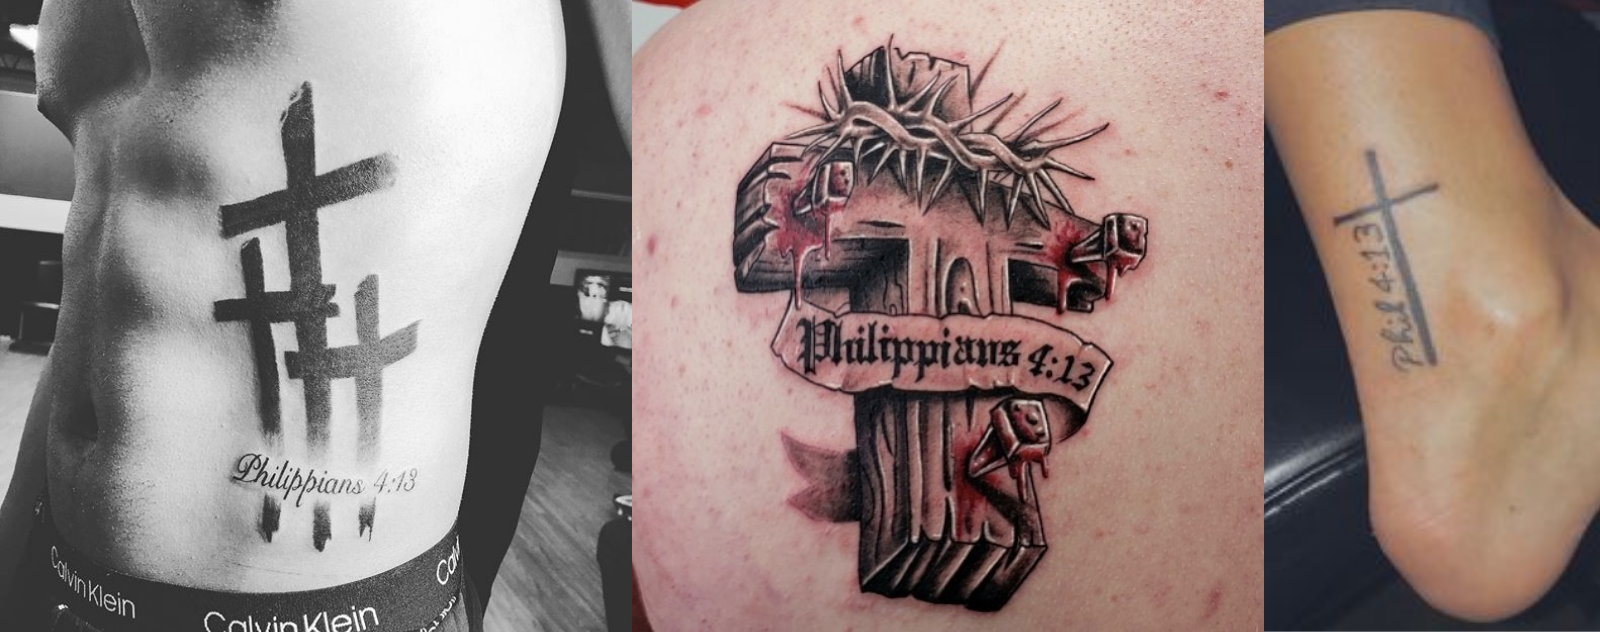 philippians-4-13-tattoo-with-cross-18